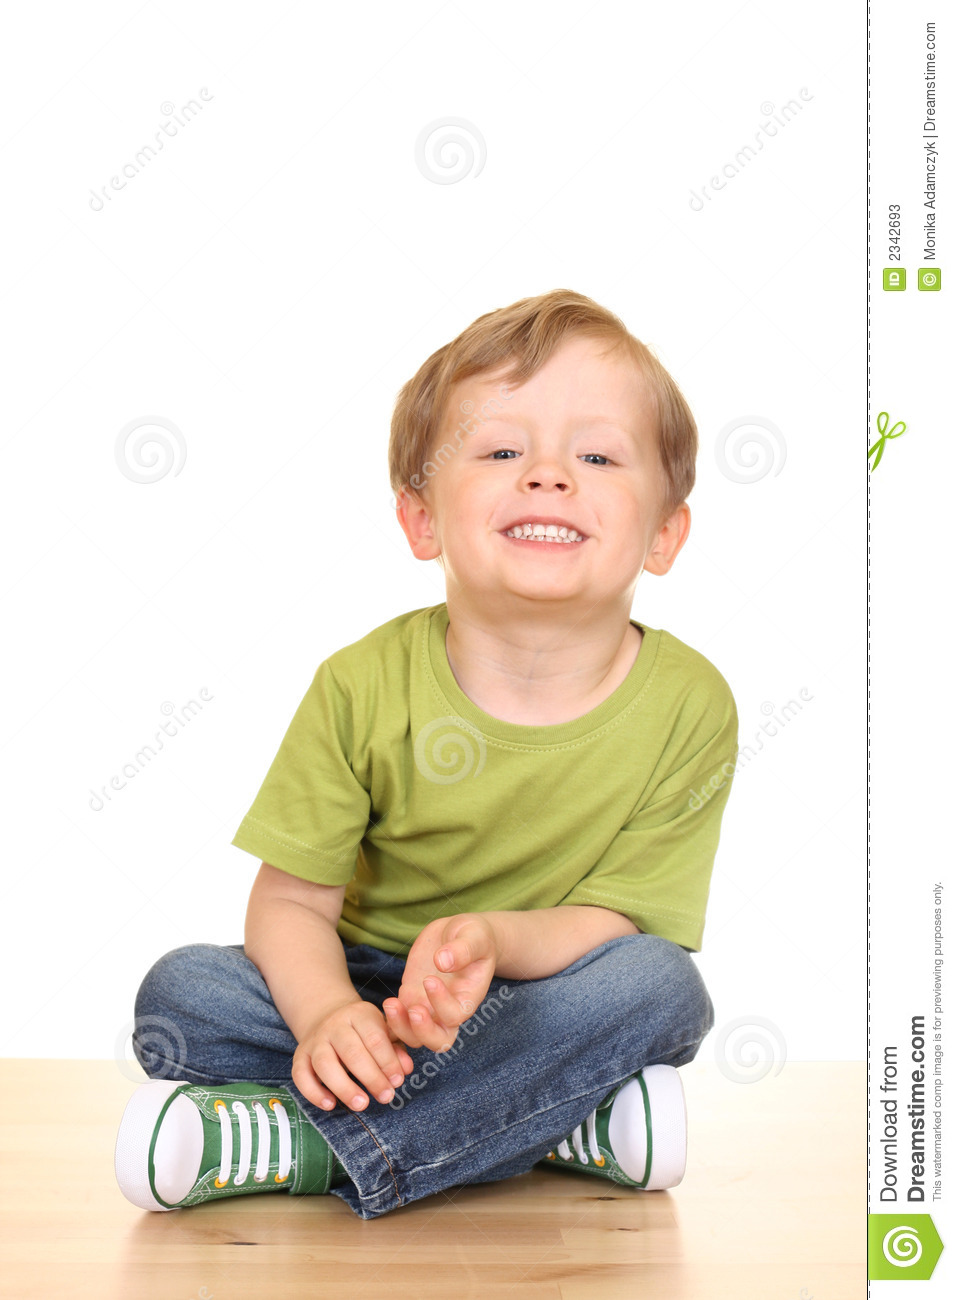 Https Www Dreamstime Com Stock Photos Happy Kid Image2342693